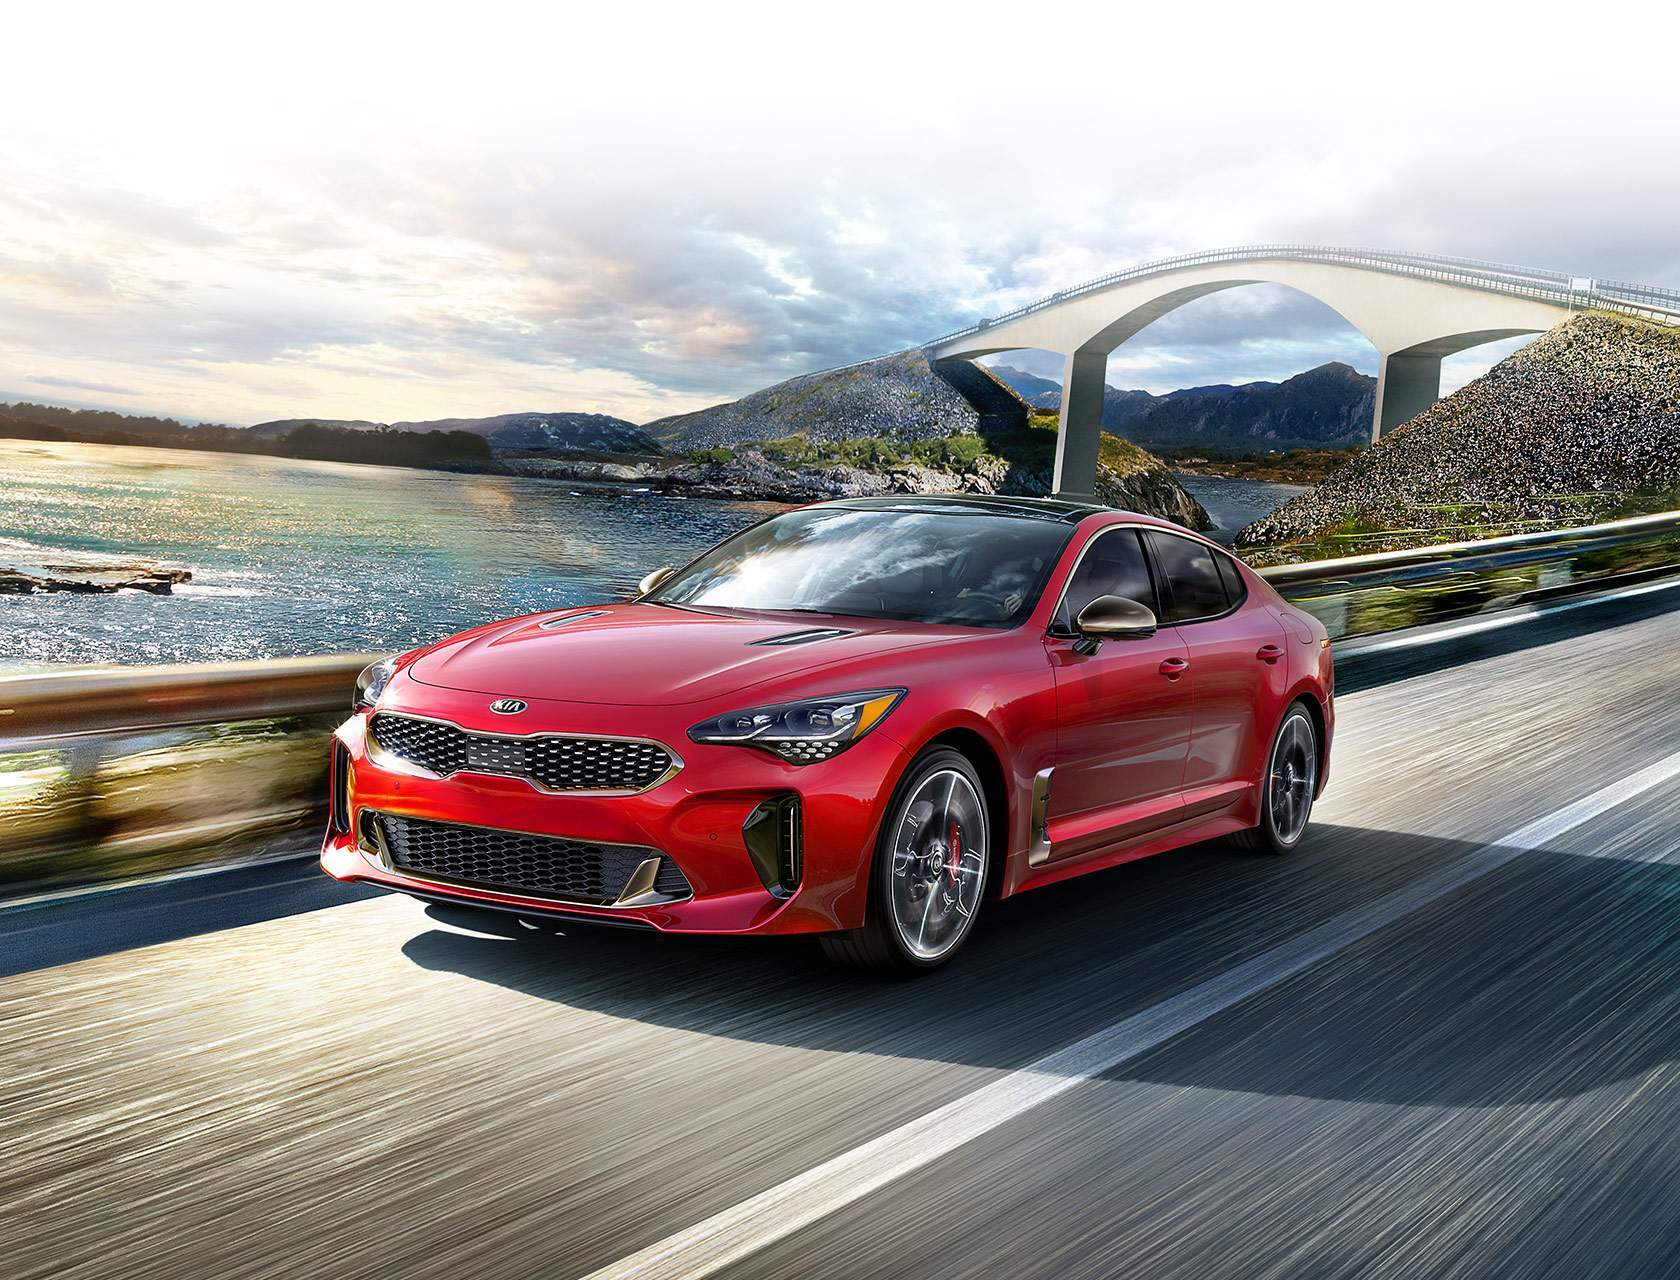 2018 Kia Stinger in Mount Hope, WV